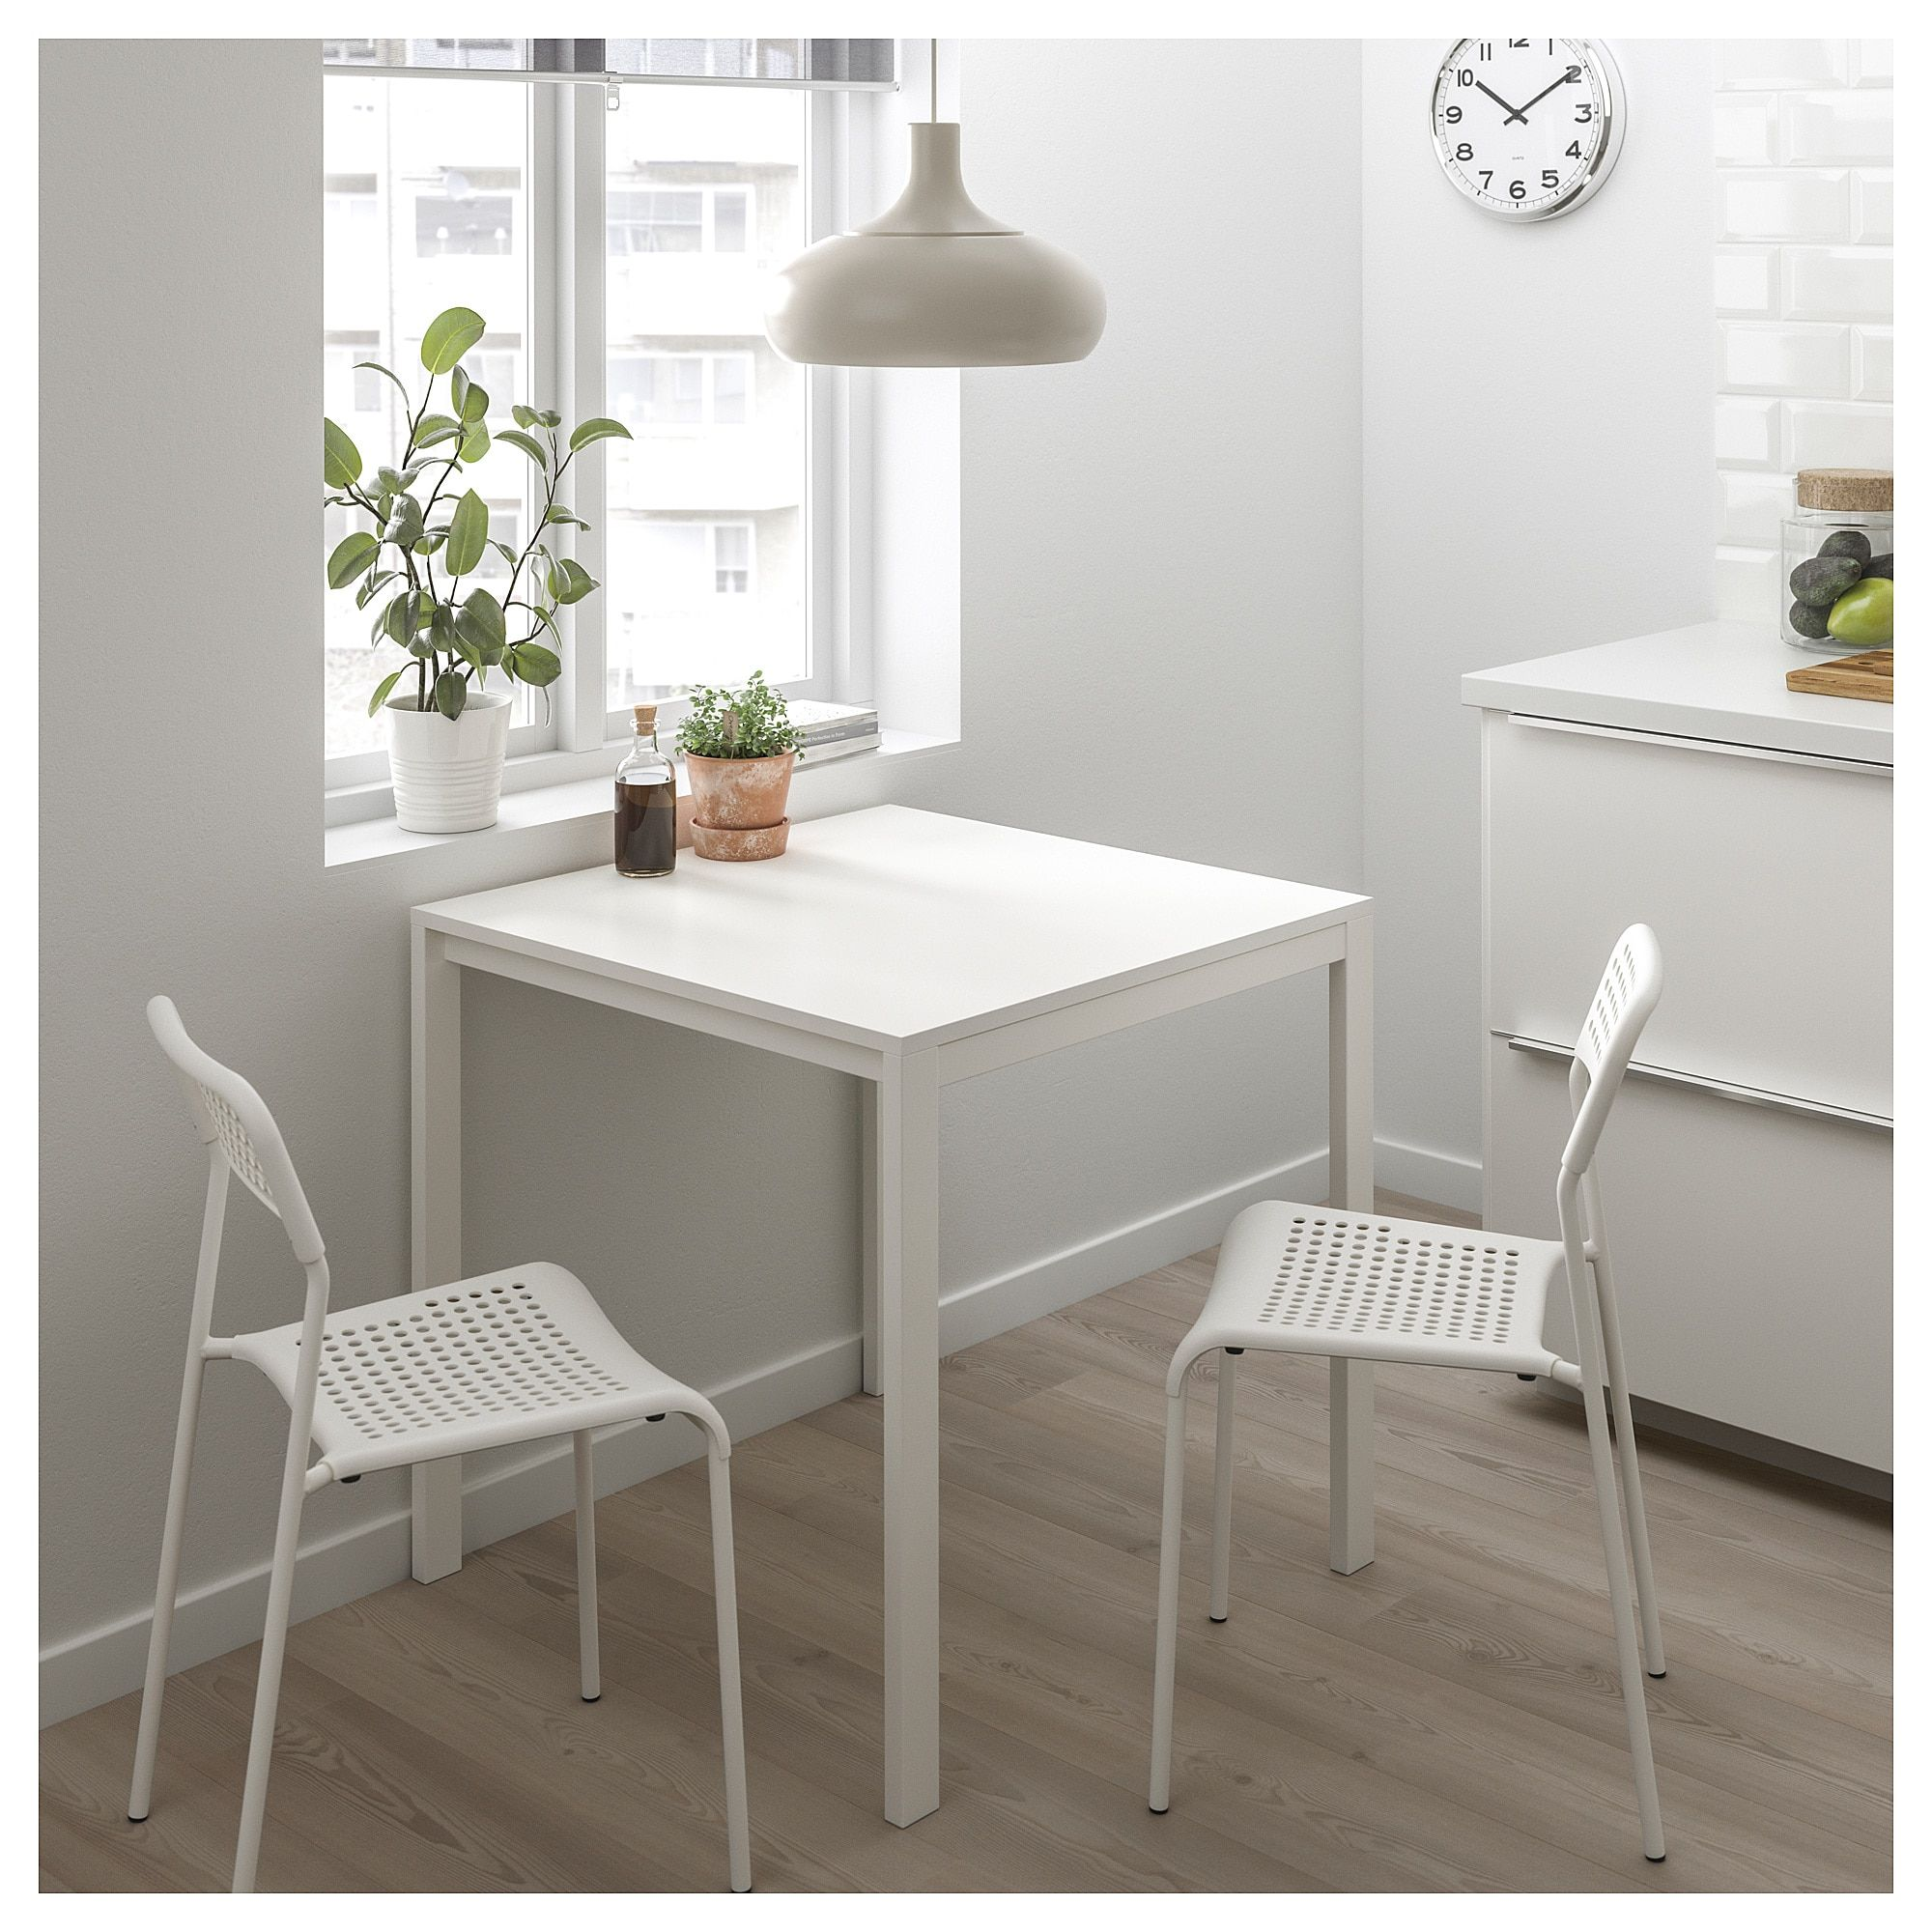 Melltorp Adde Table And 2 Chairs White 29 1 2 Dining Room Small Small Kitchen Tables Ikea